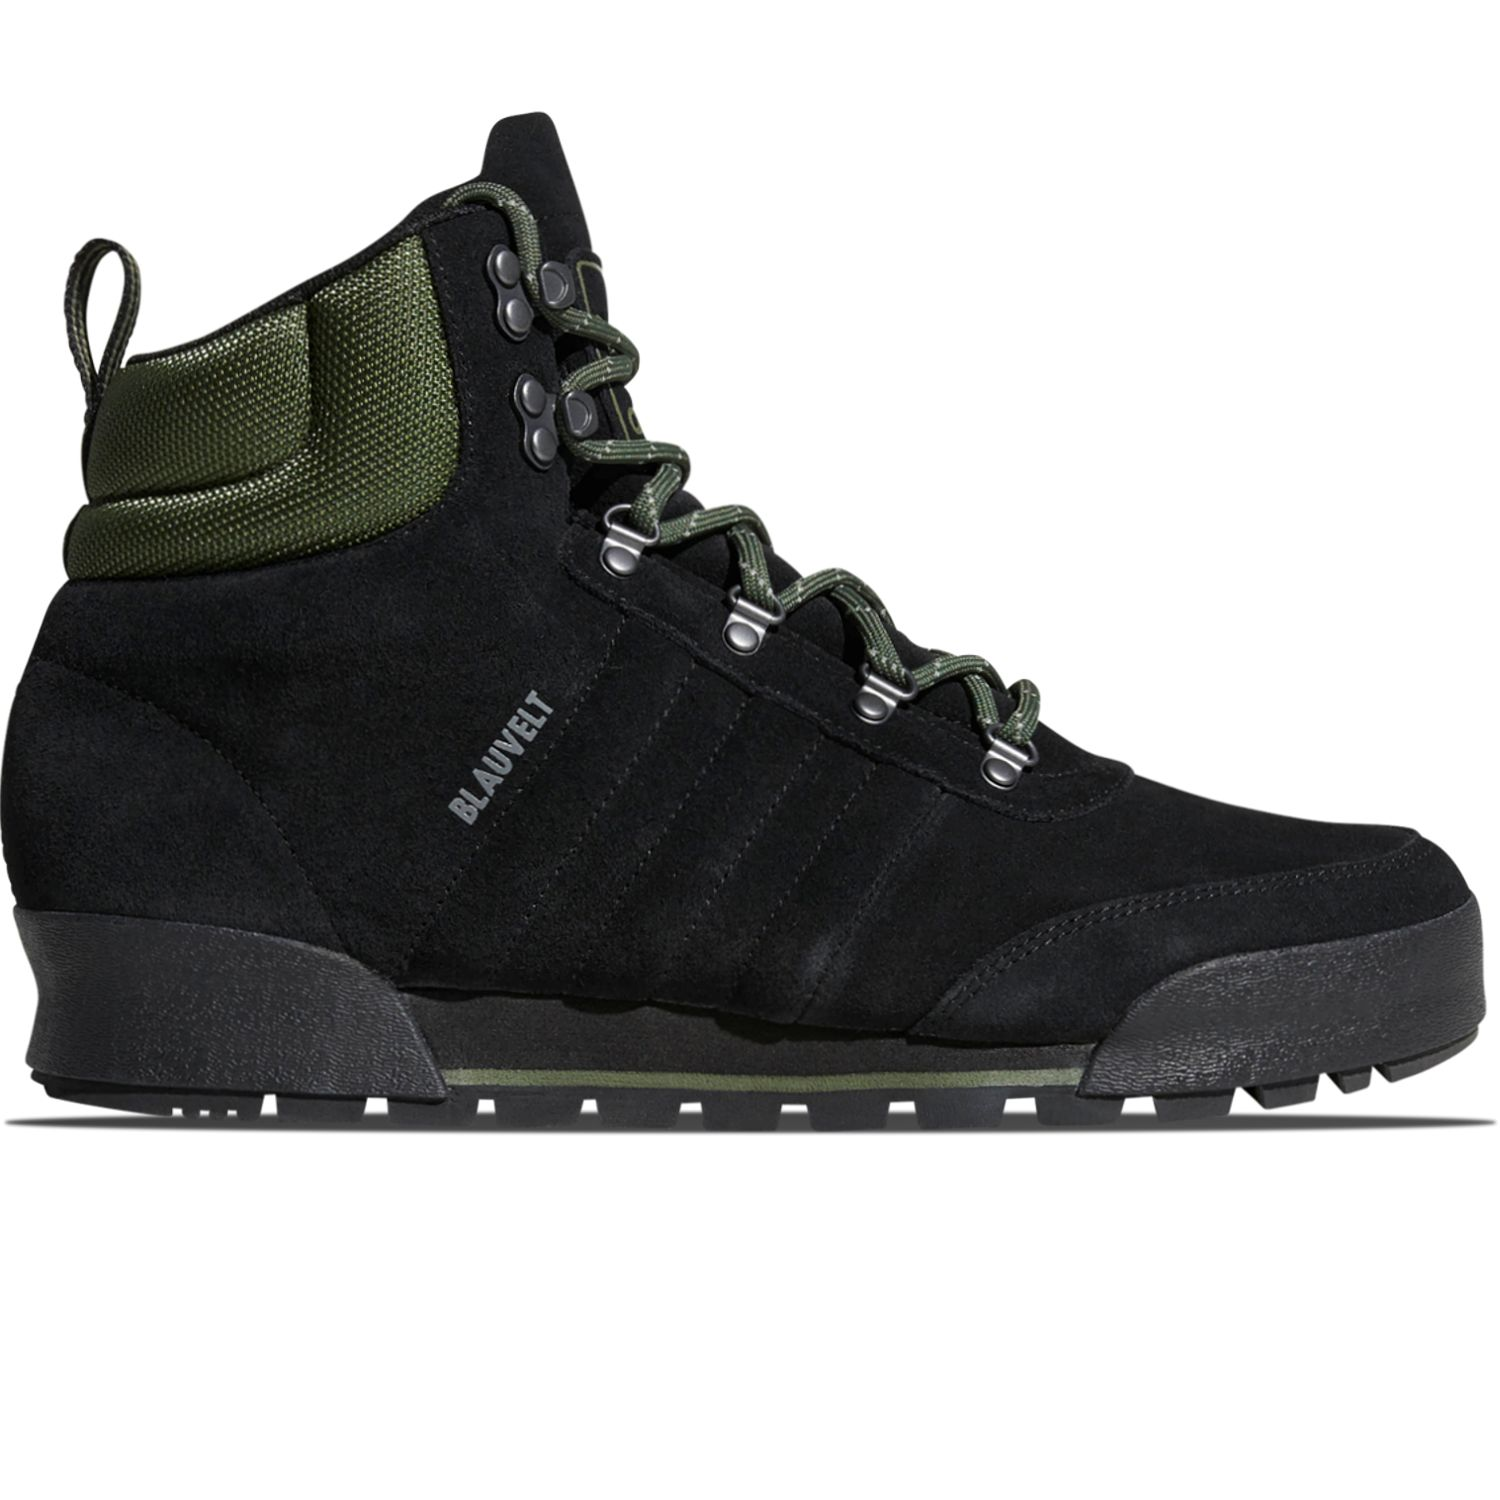 sports shoes 2f382 81657 ... BUTY MĘSKIE ADIDAS JAKE BOOT 2.0 B41494 ...